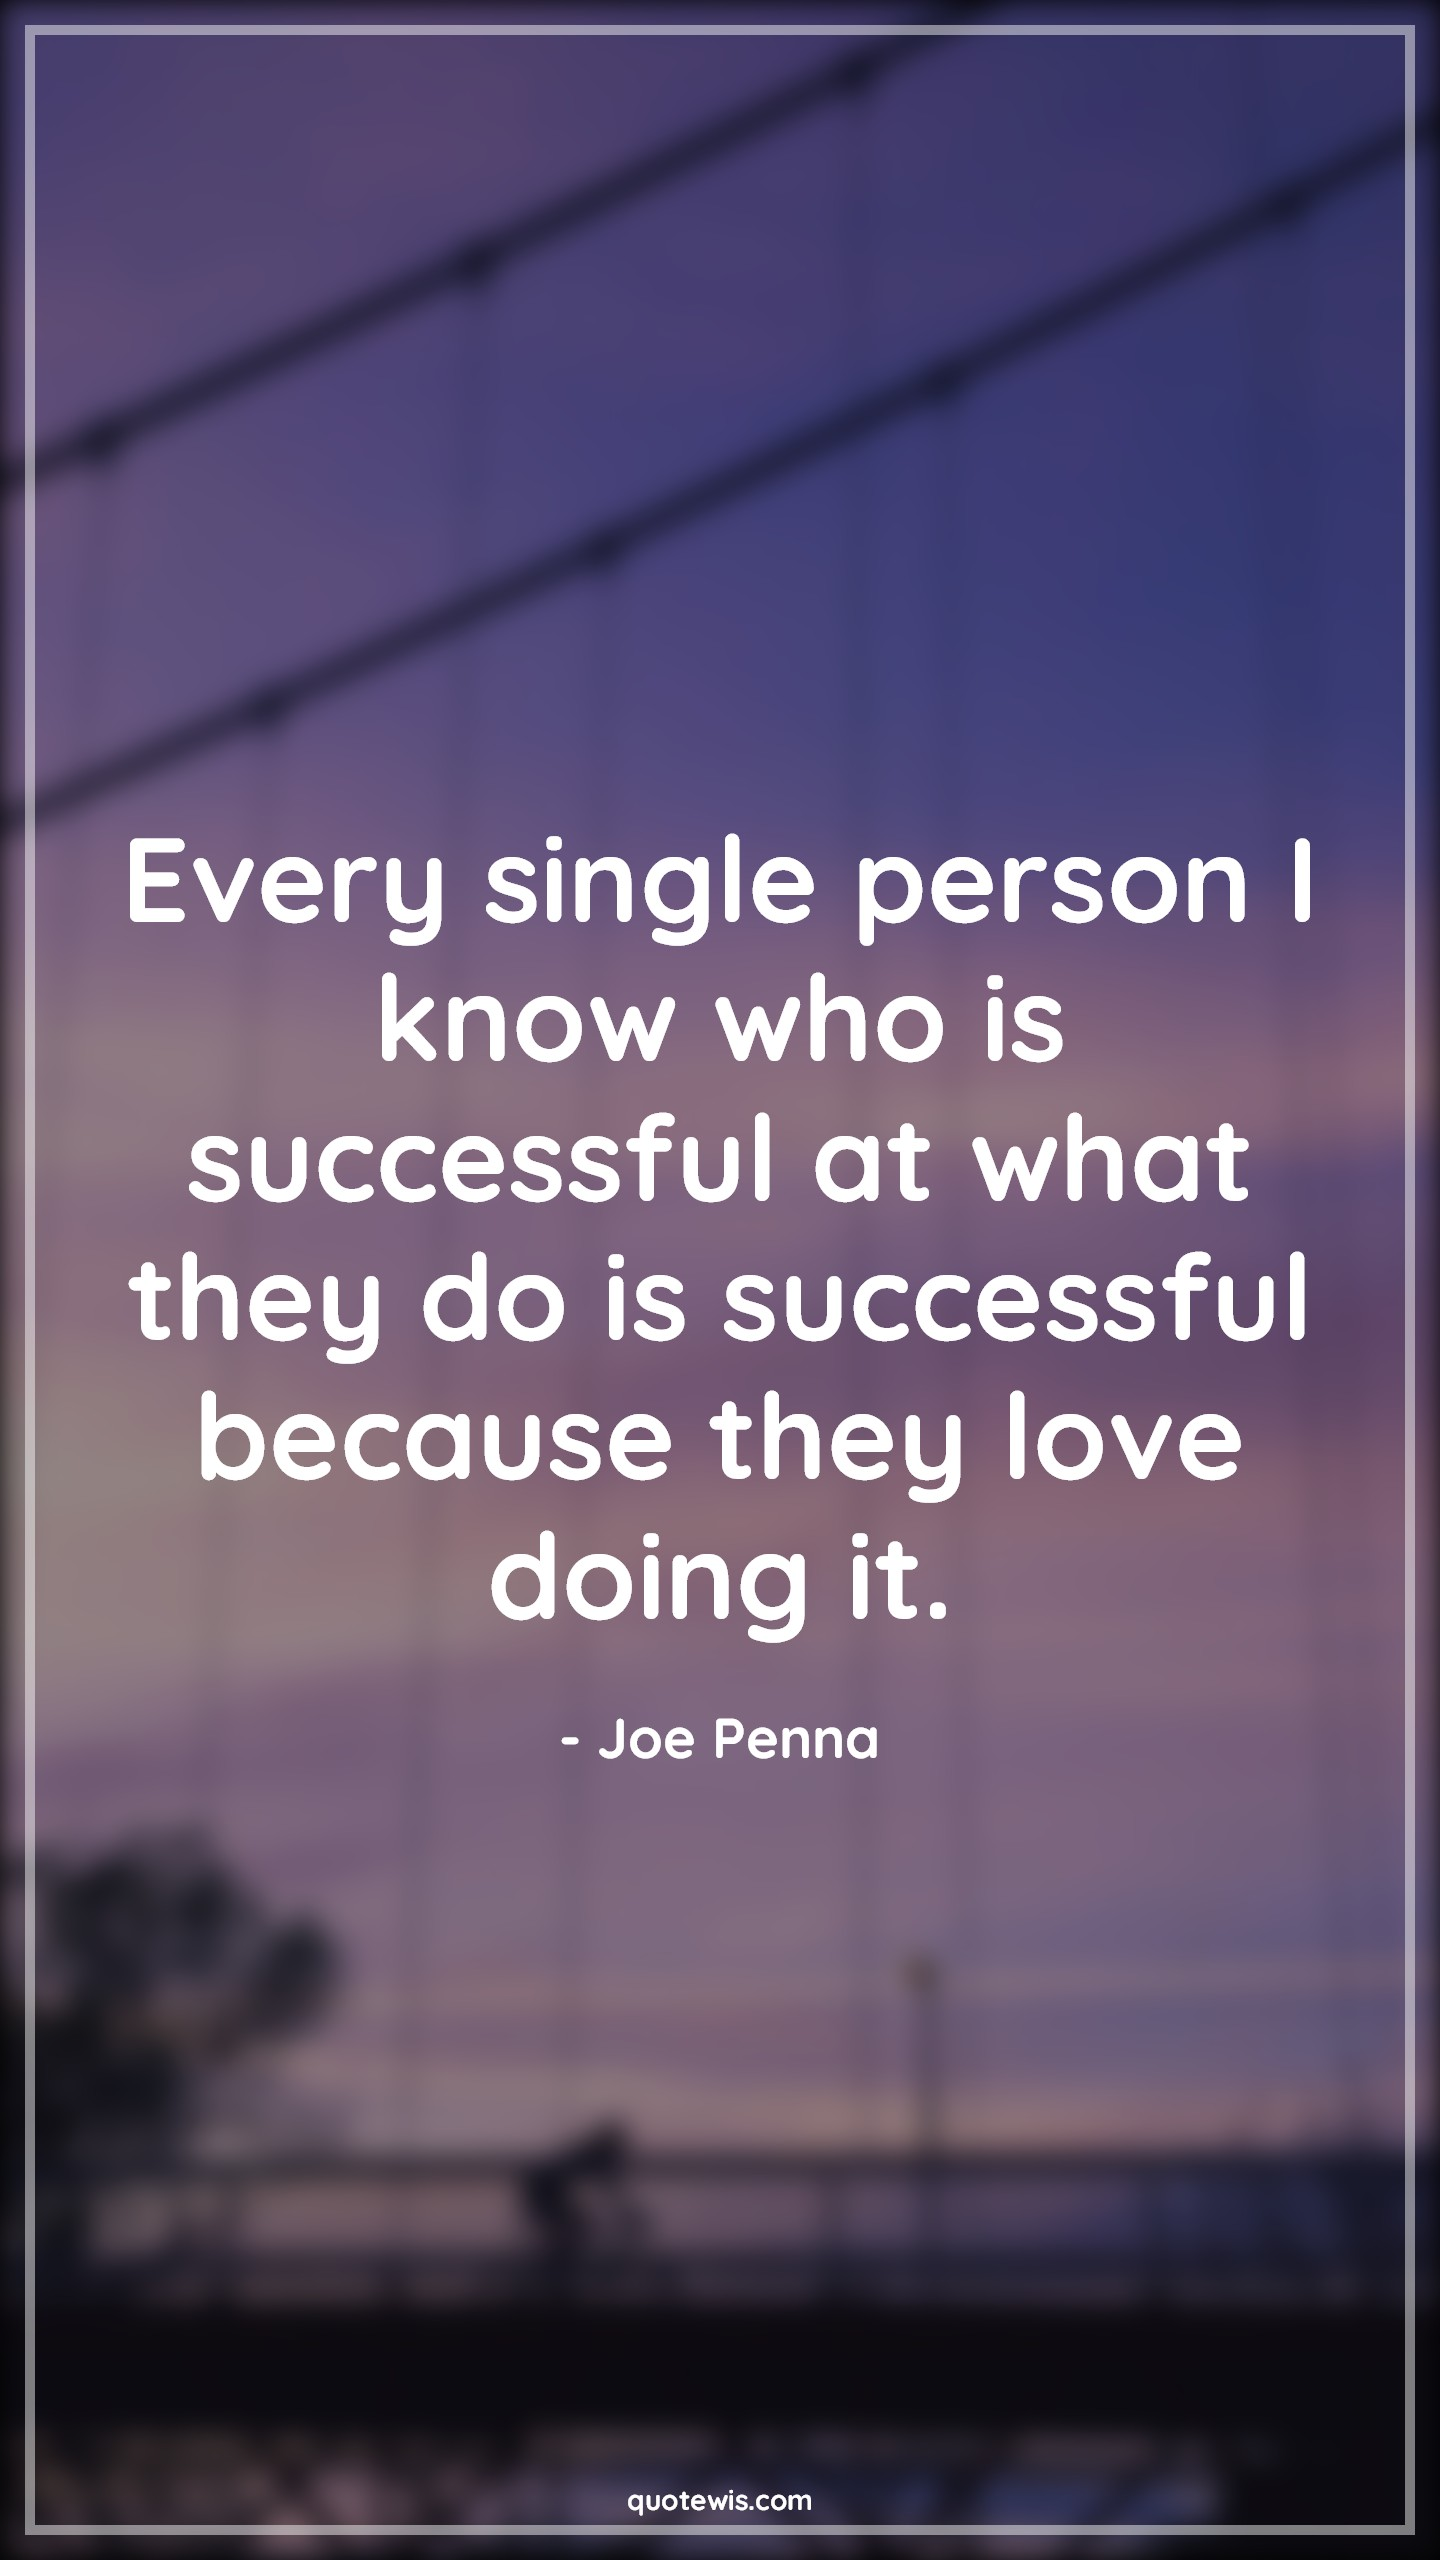 Every single person I know who is successful at what they do is successful because they love doing it.